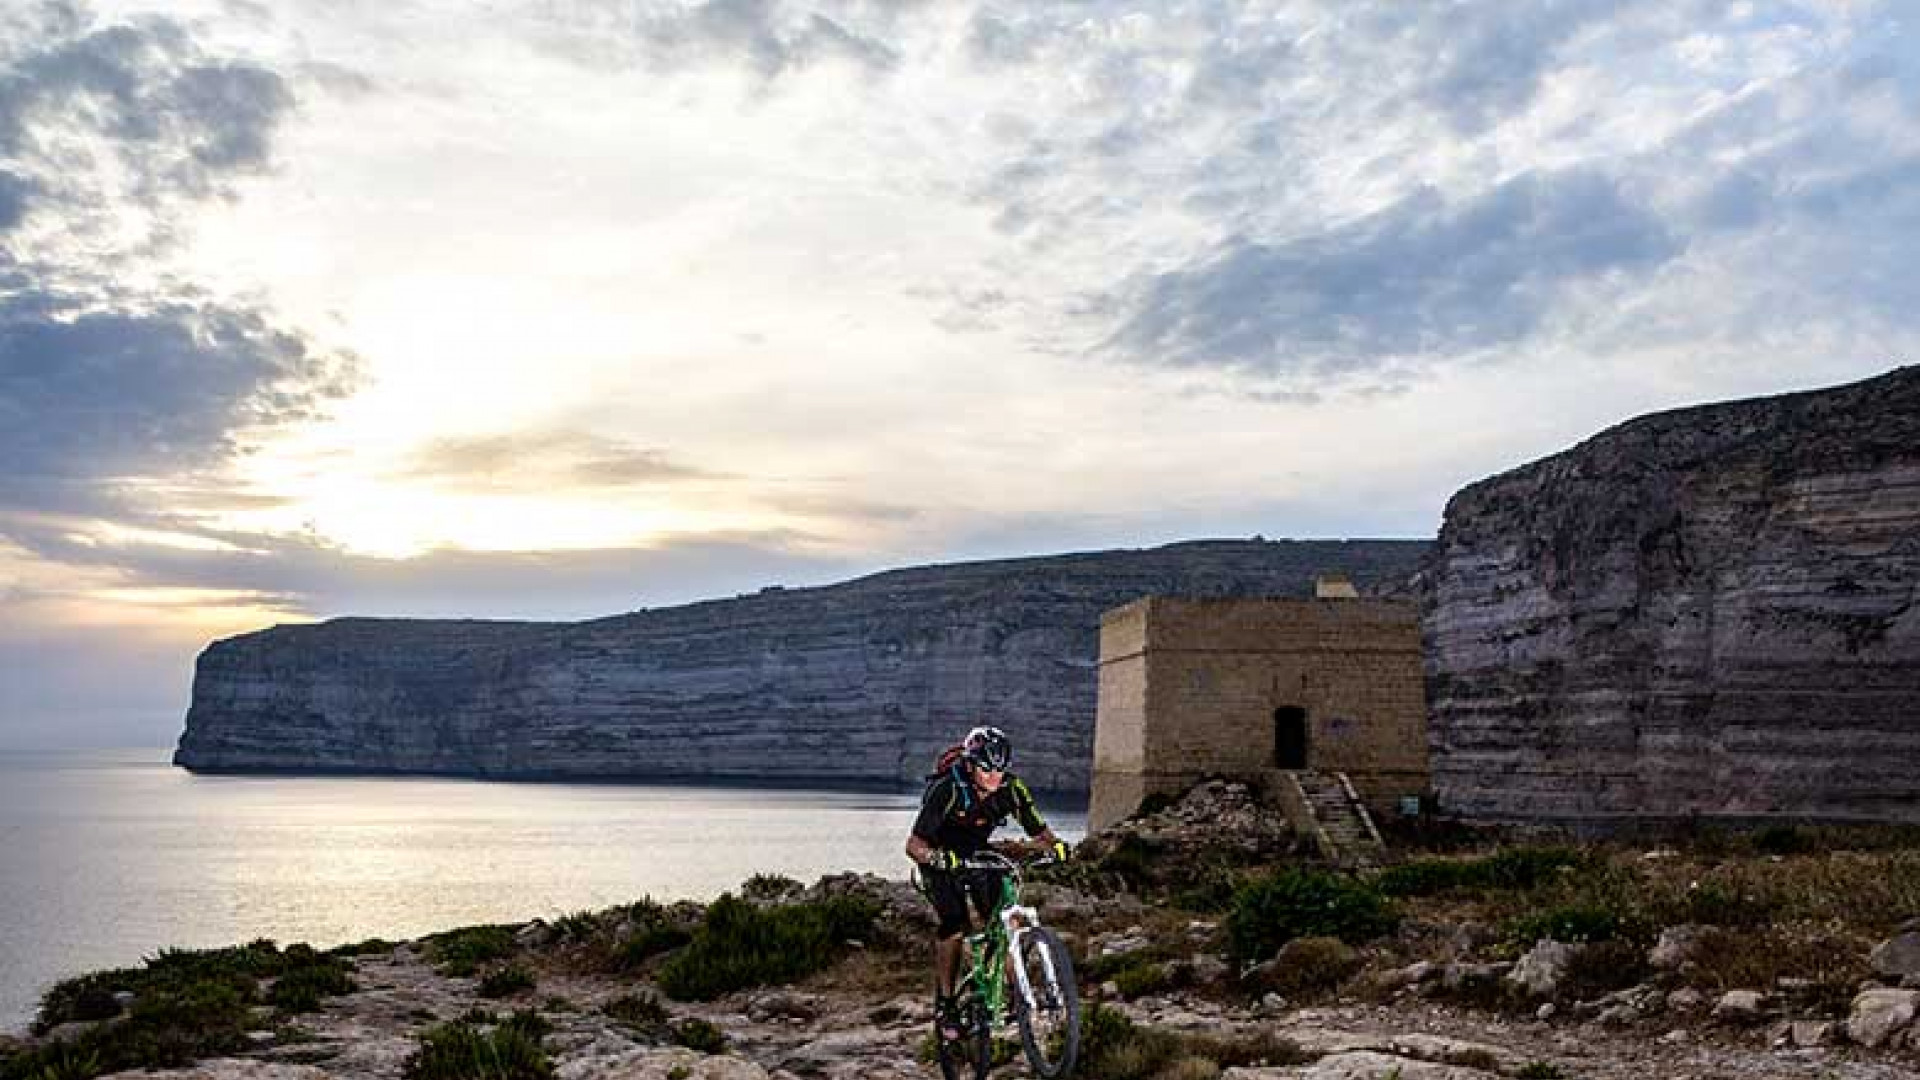 Biking-by-Xlendi-Tower,-Xlendi